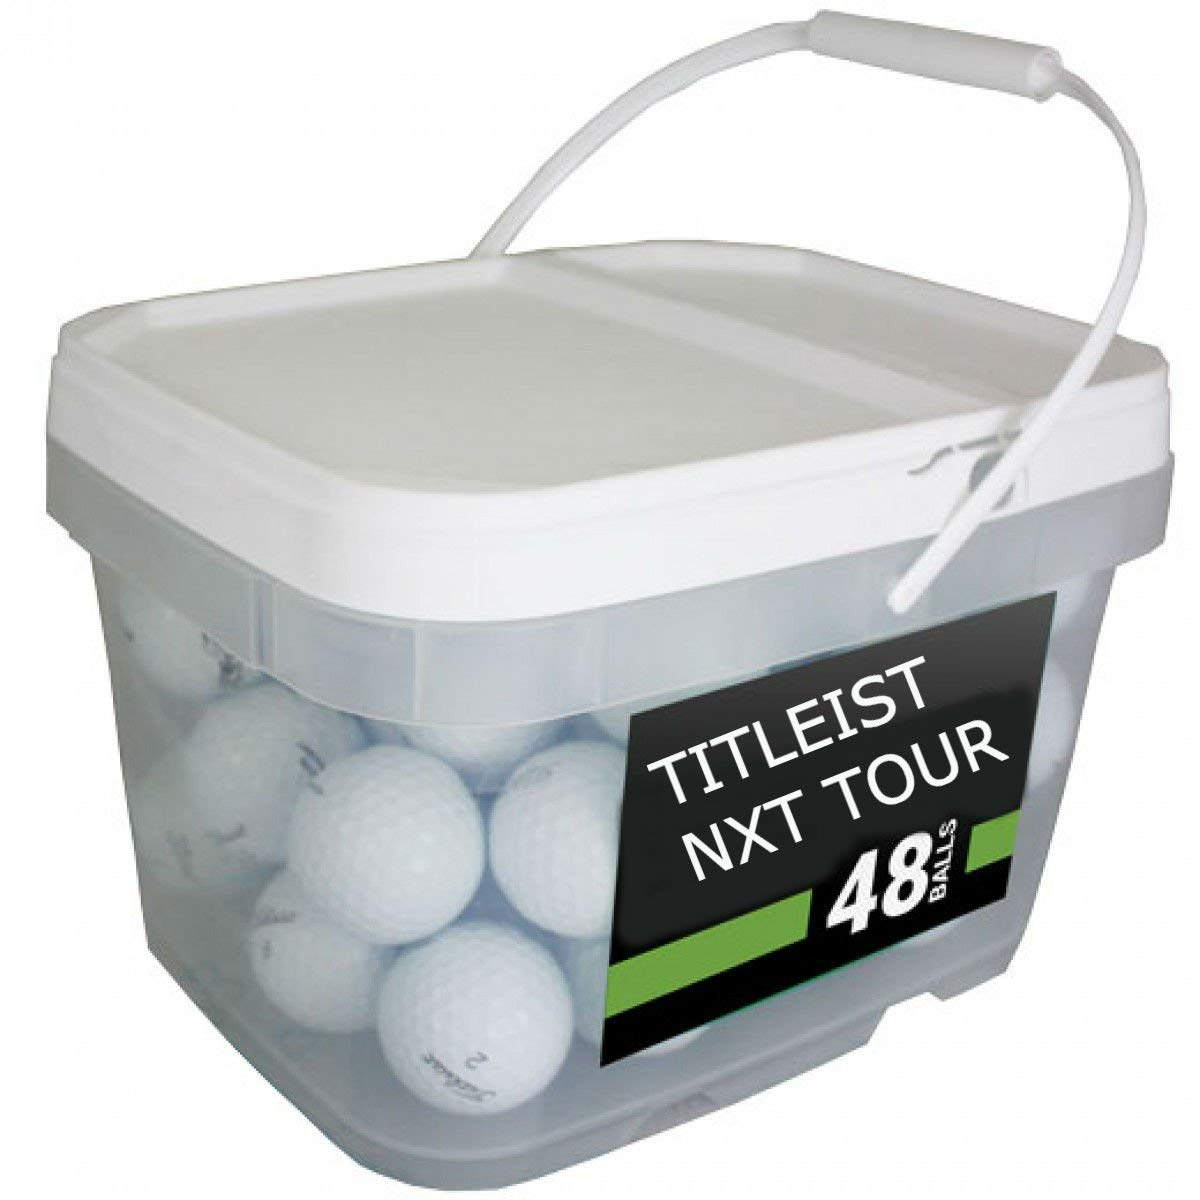 Titleist NXT tour golf ball Review